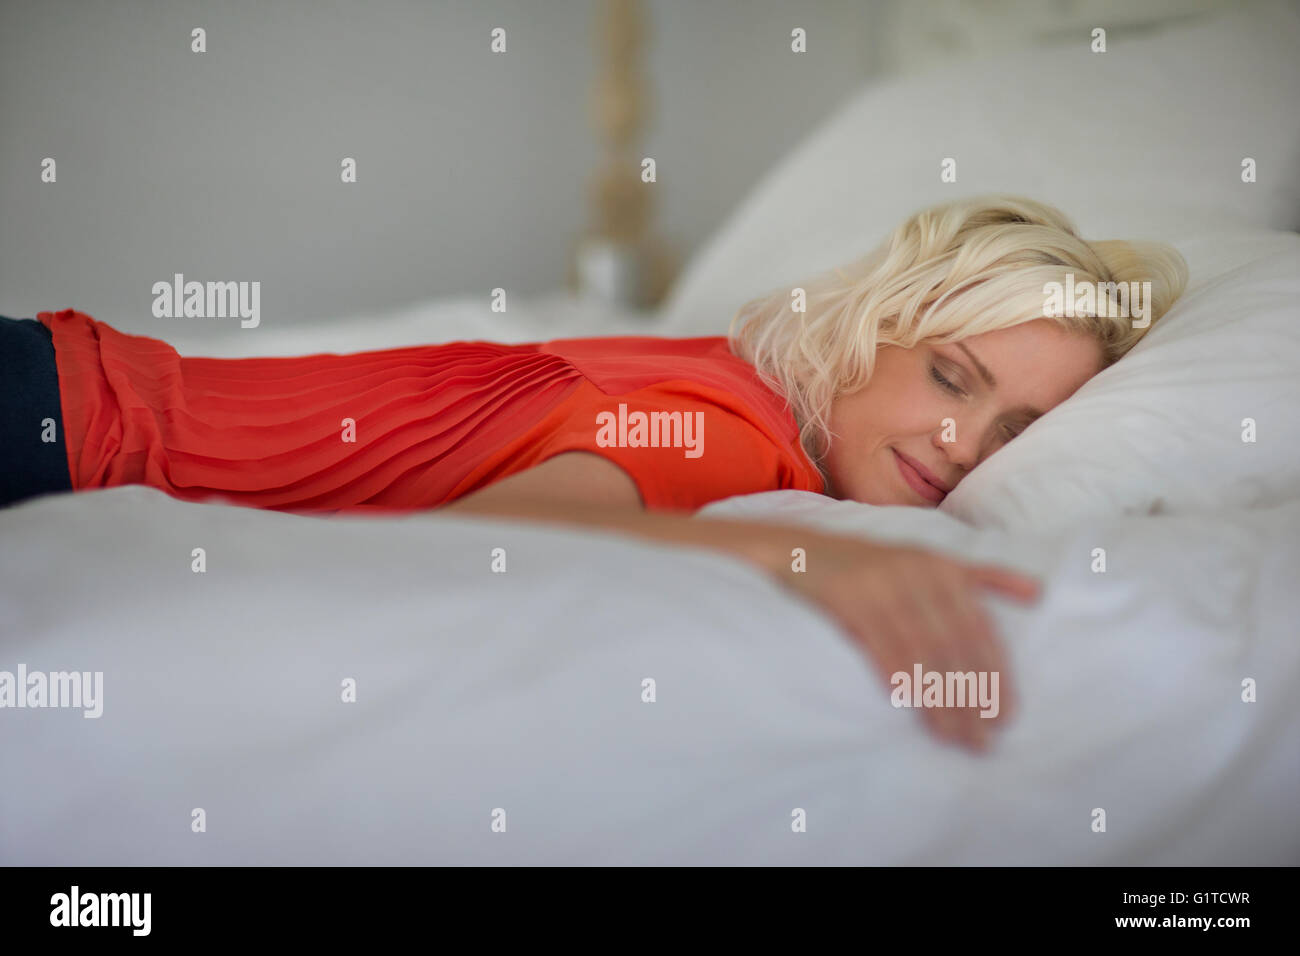 Serene woman sleeping on bed with eyes closed - Stock Image